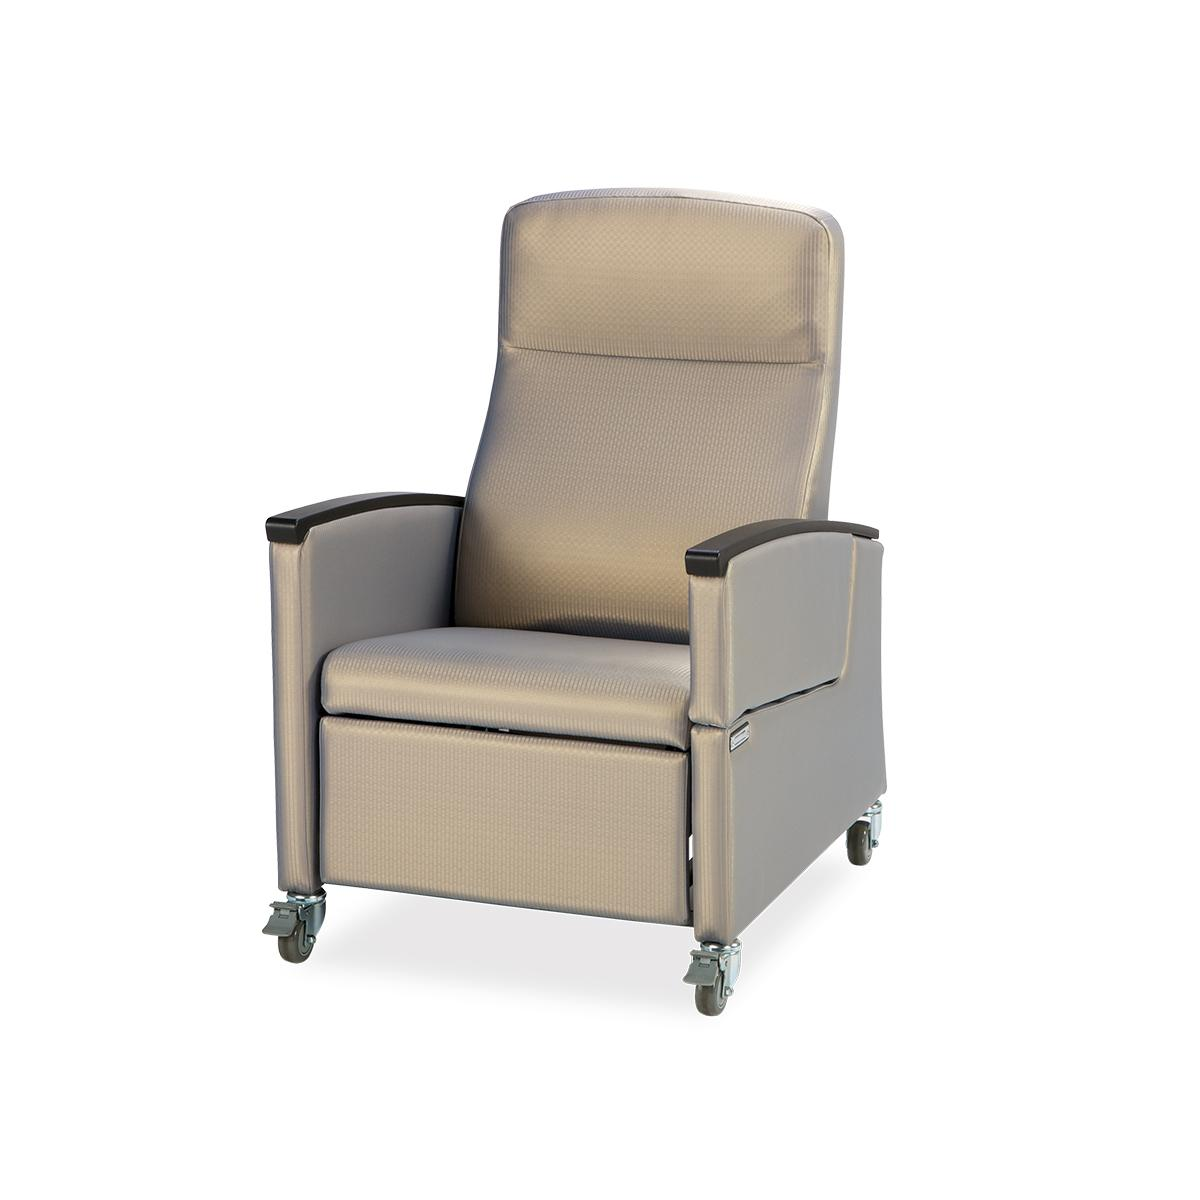 Art of Care Wall Saver Recliner, tan, 3/4 view